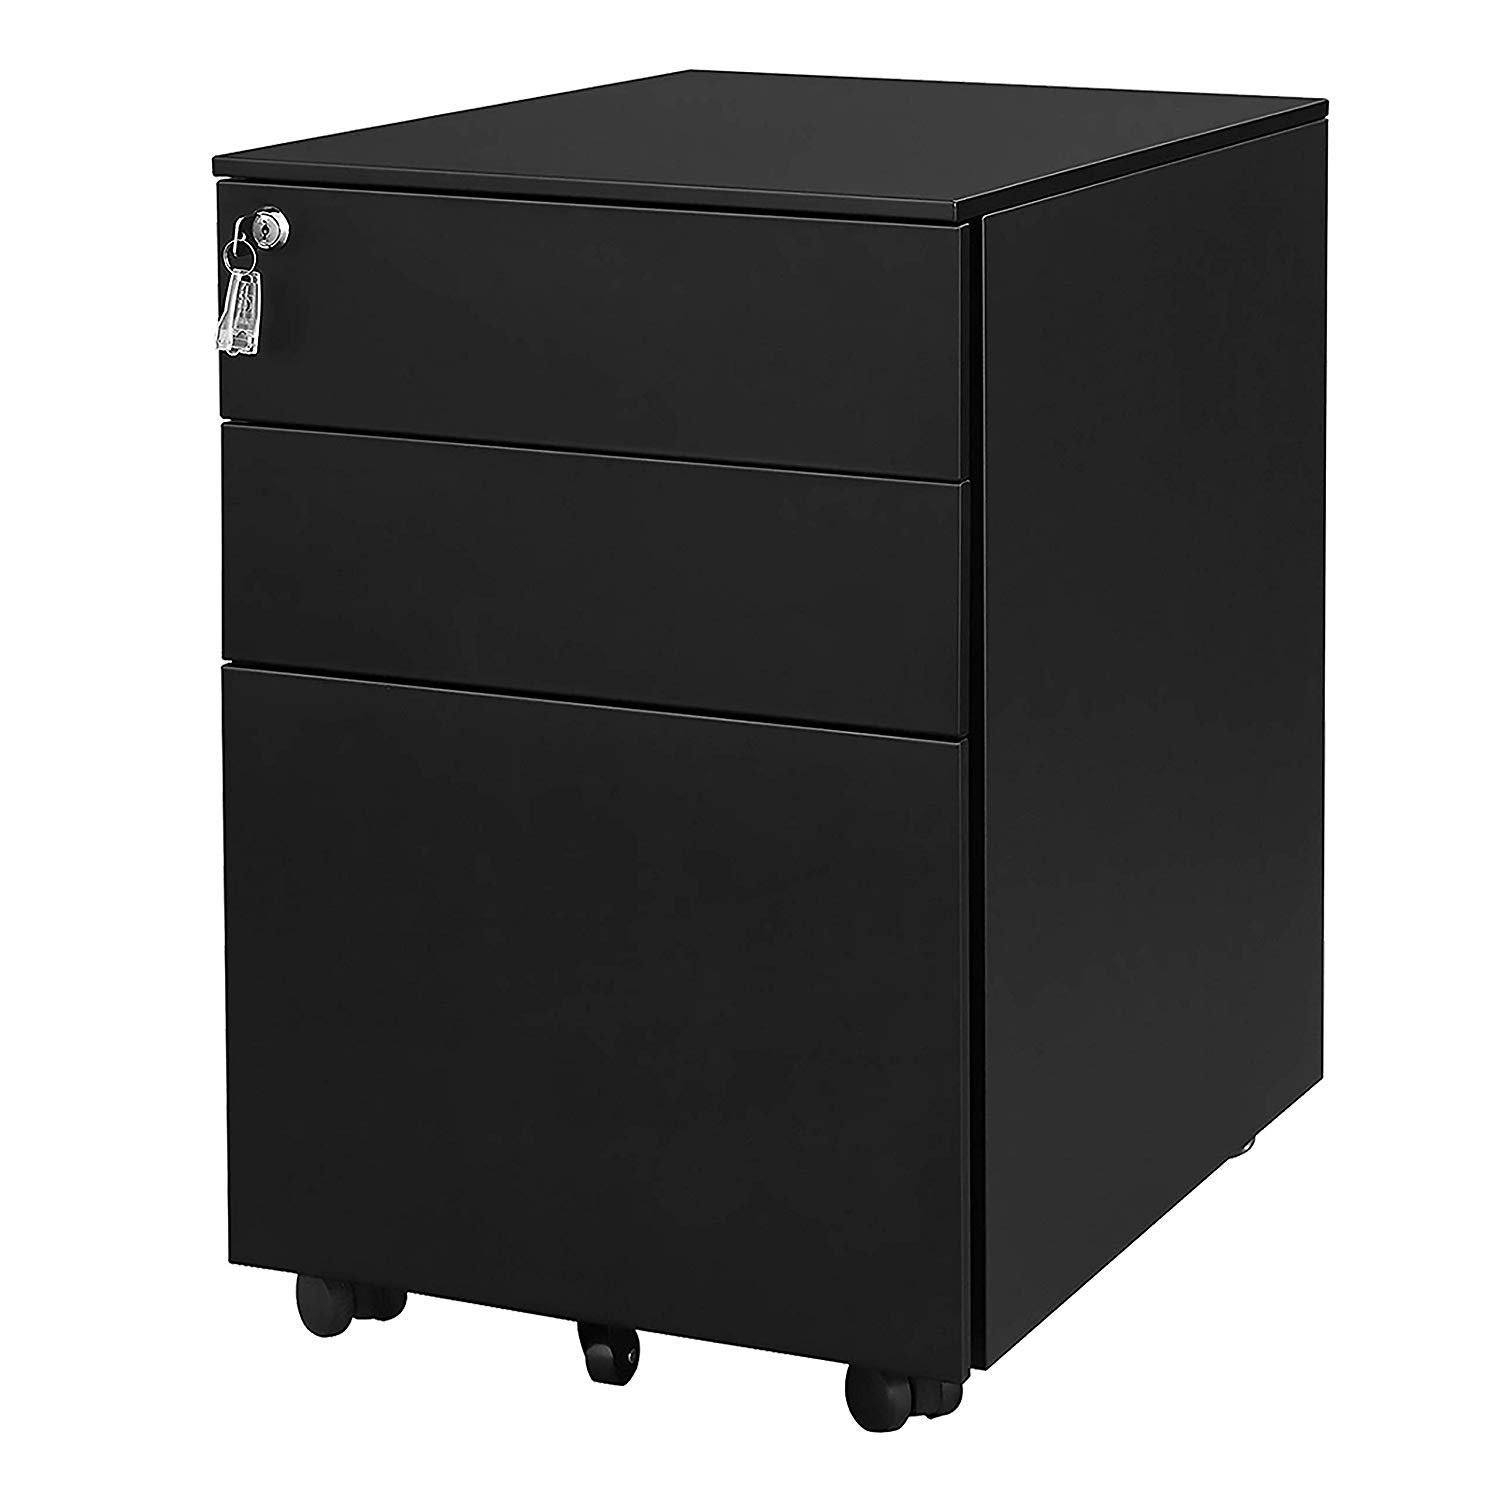 3 Drawer Metal Mobile File Cabinet with Lock Fully Assembled Except Casters (Black) by Bartfort